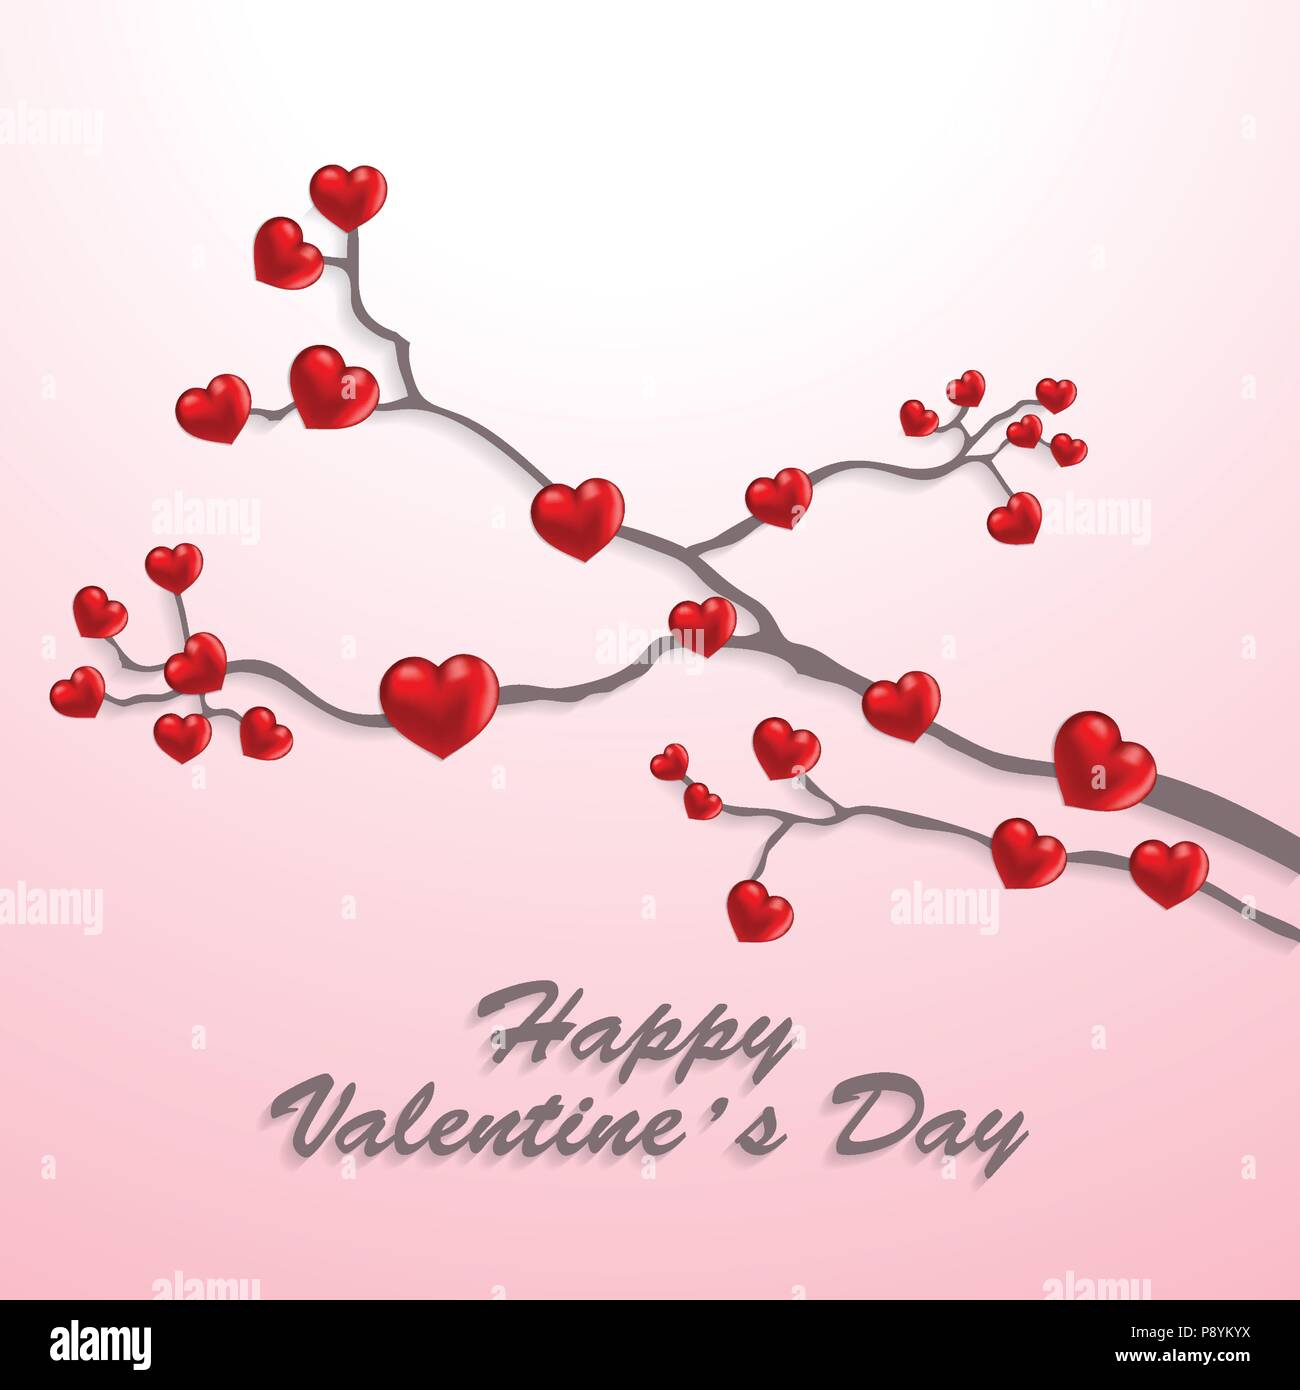 Happy Valentine S Day Card With Hearts Tree For Web Design And Application Interface Also Useful For Infographics Vector Illustration Stock Vector Image Art Alamy